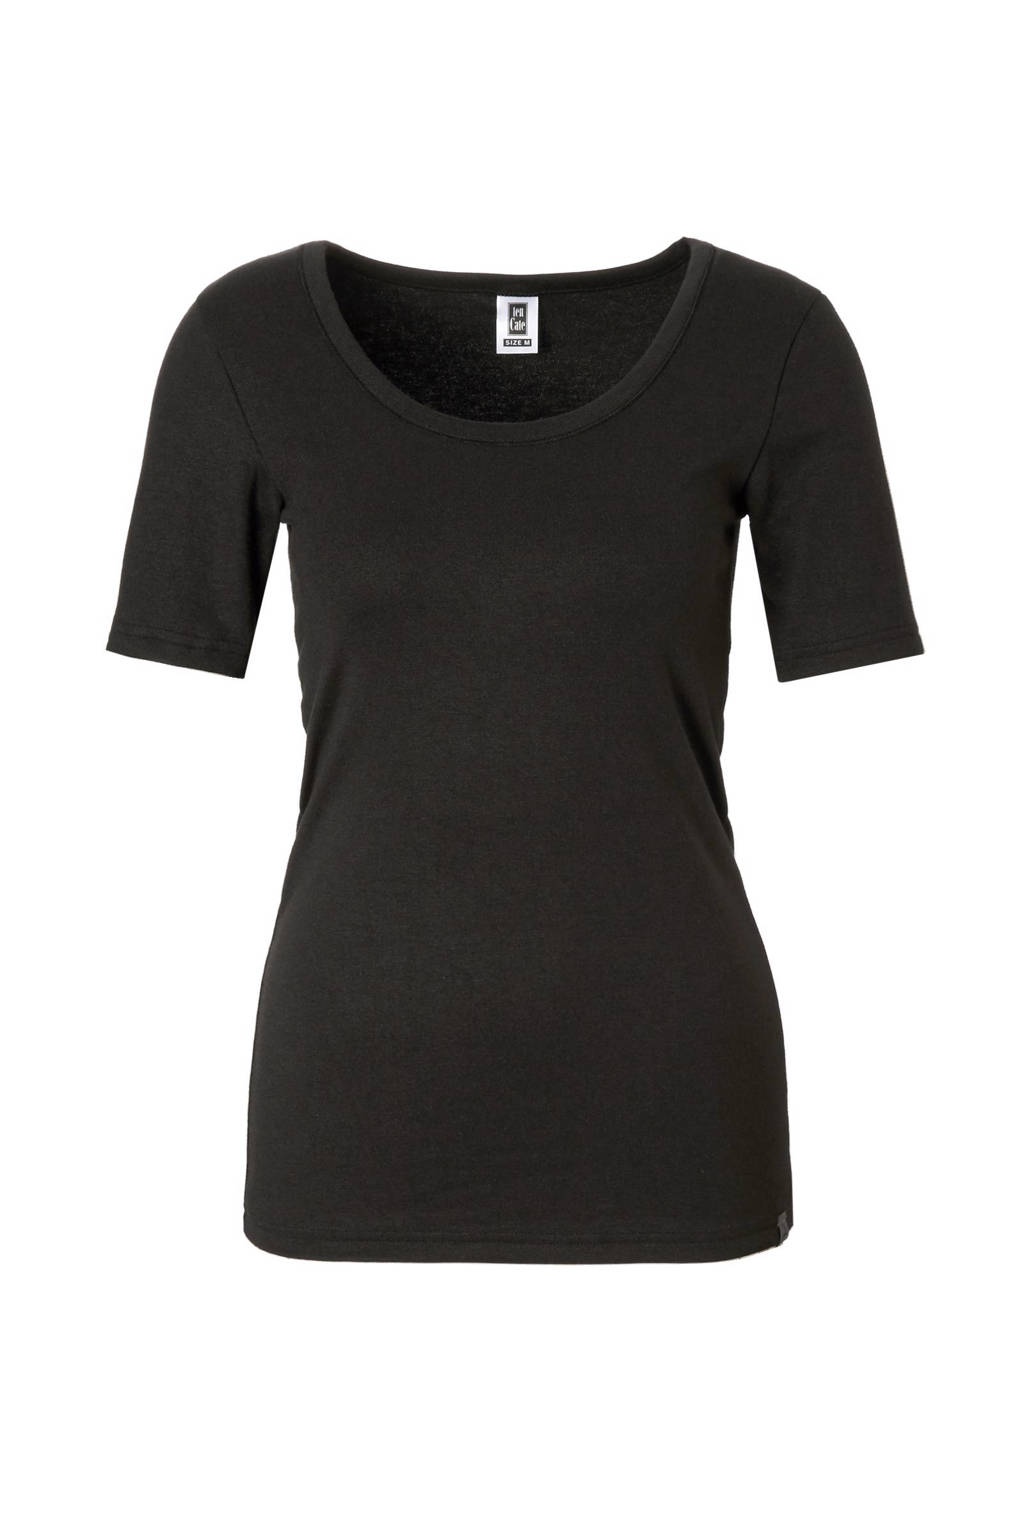 ten Cate thermo T-shirt, Antraciet